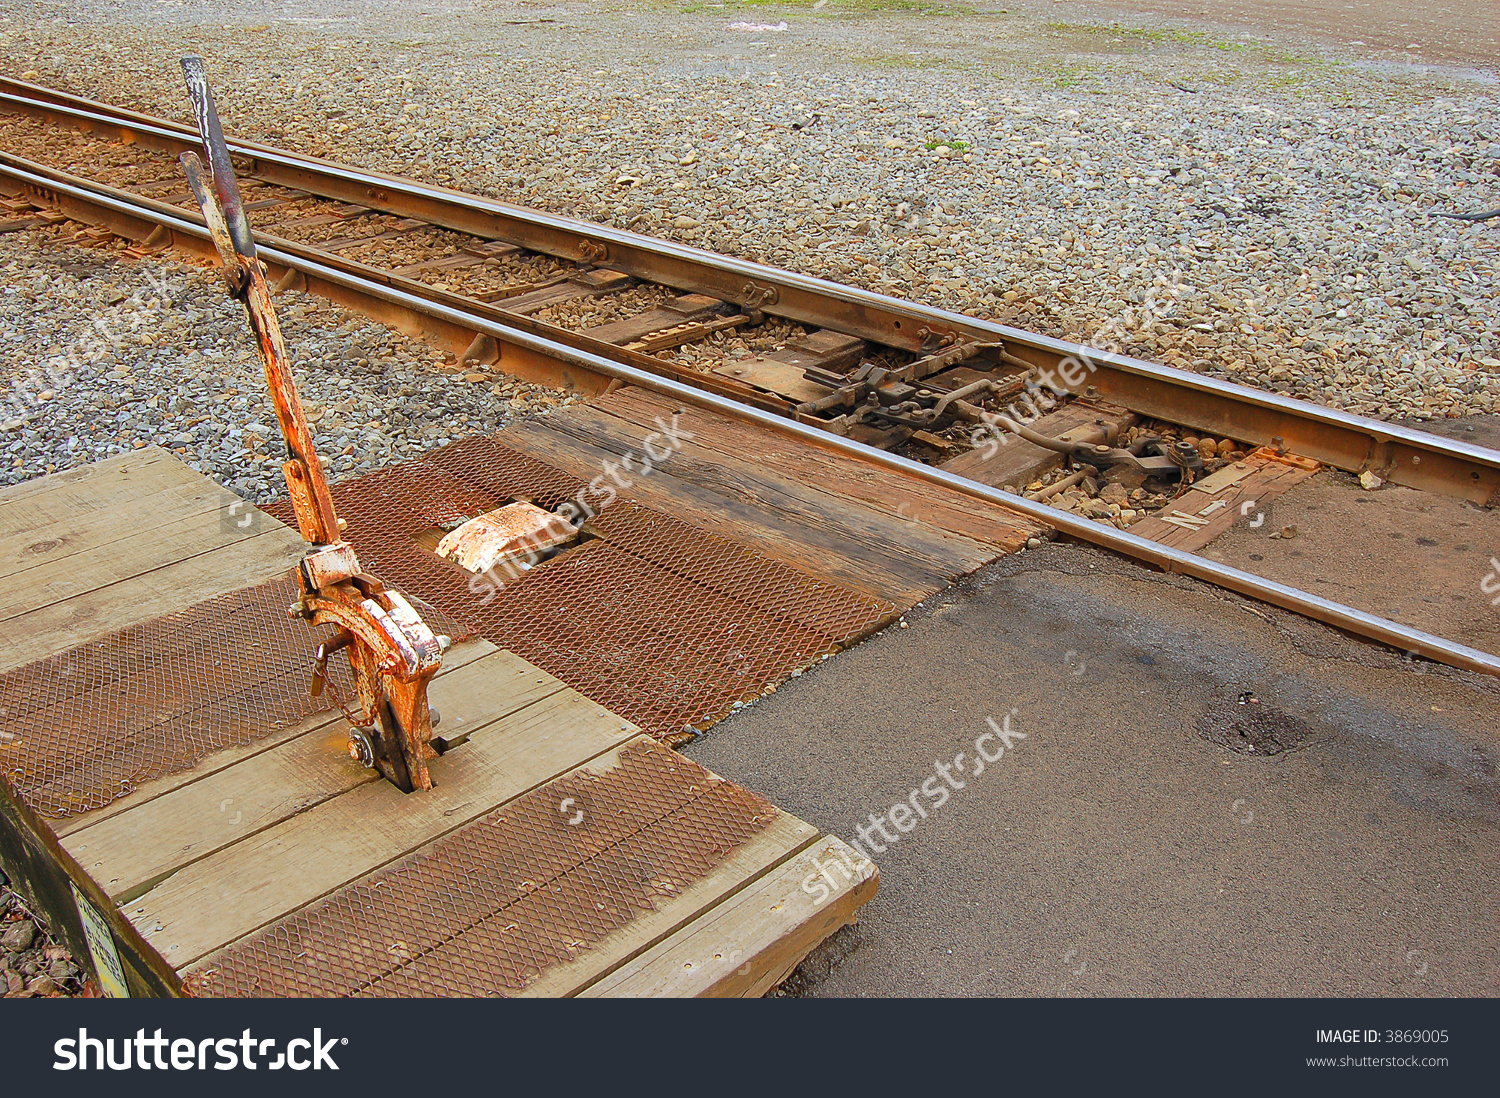 Railroad Points Lever And Track Connections Stock Photo 3869005.